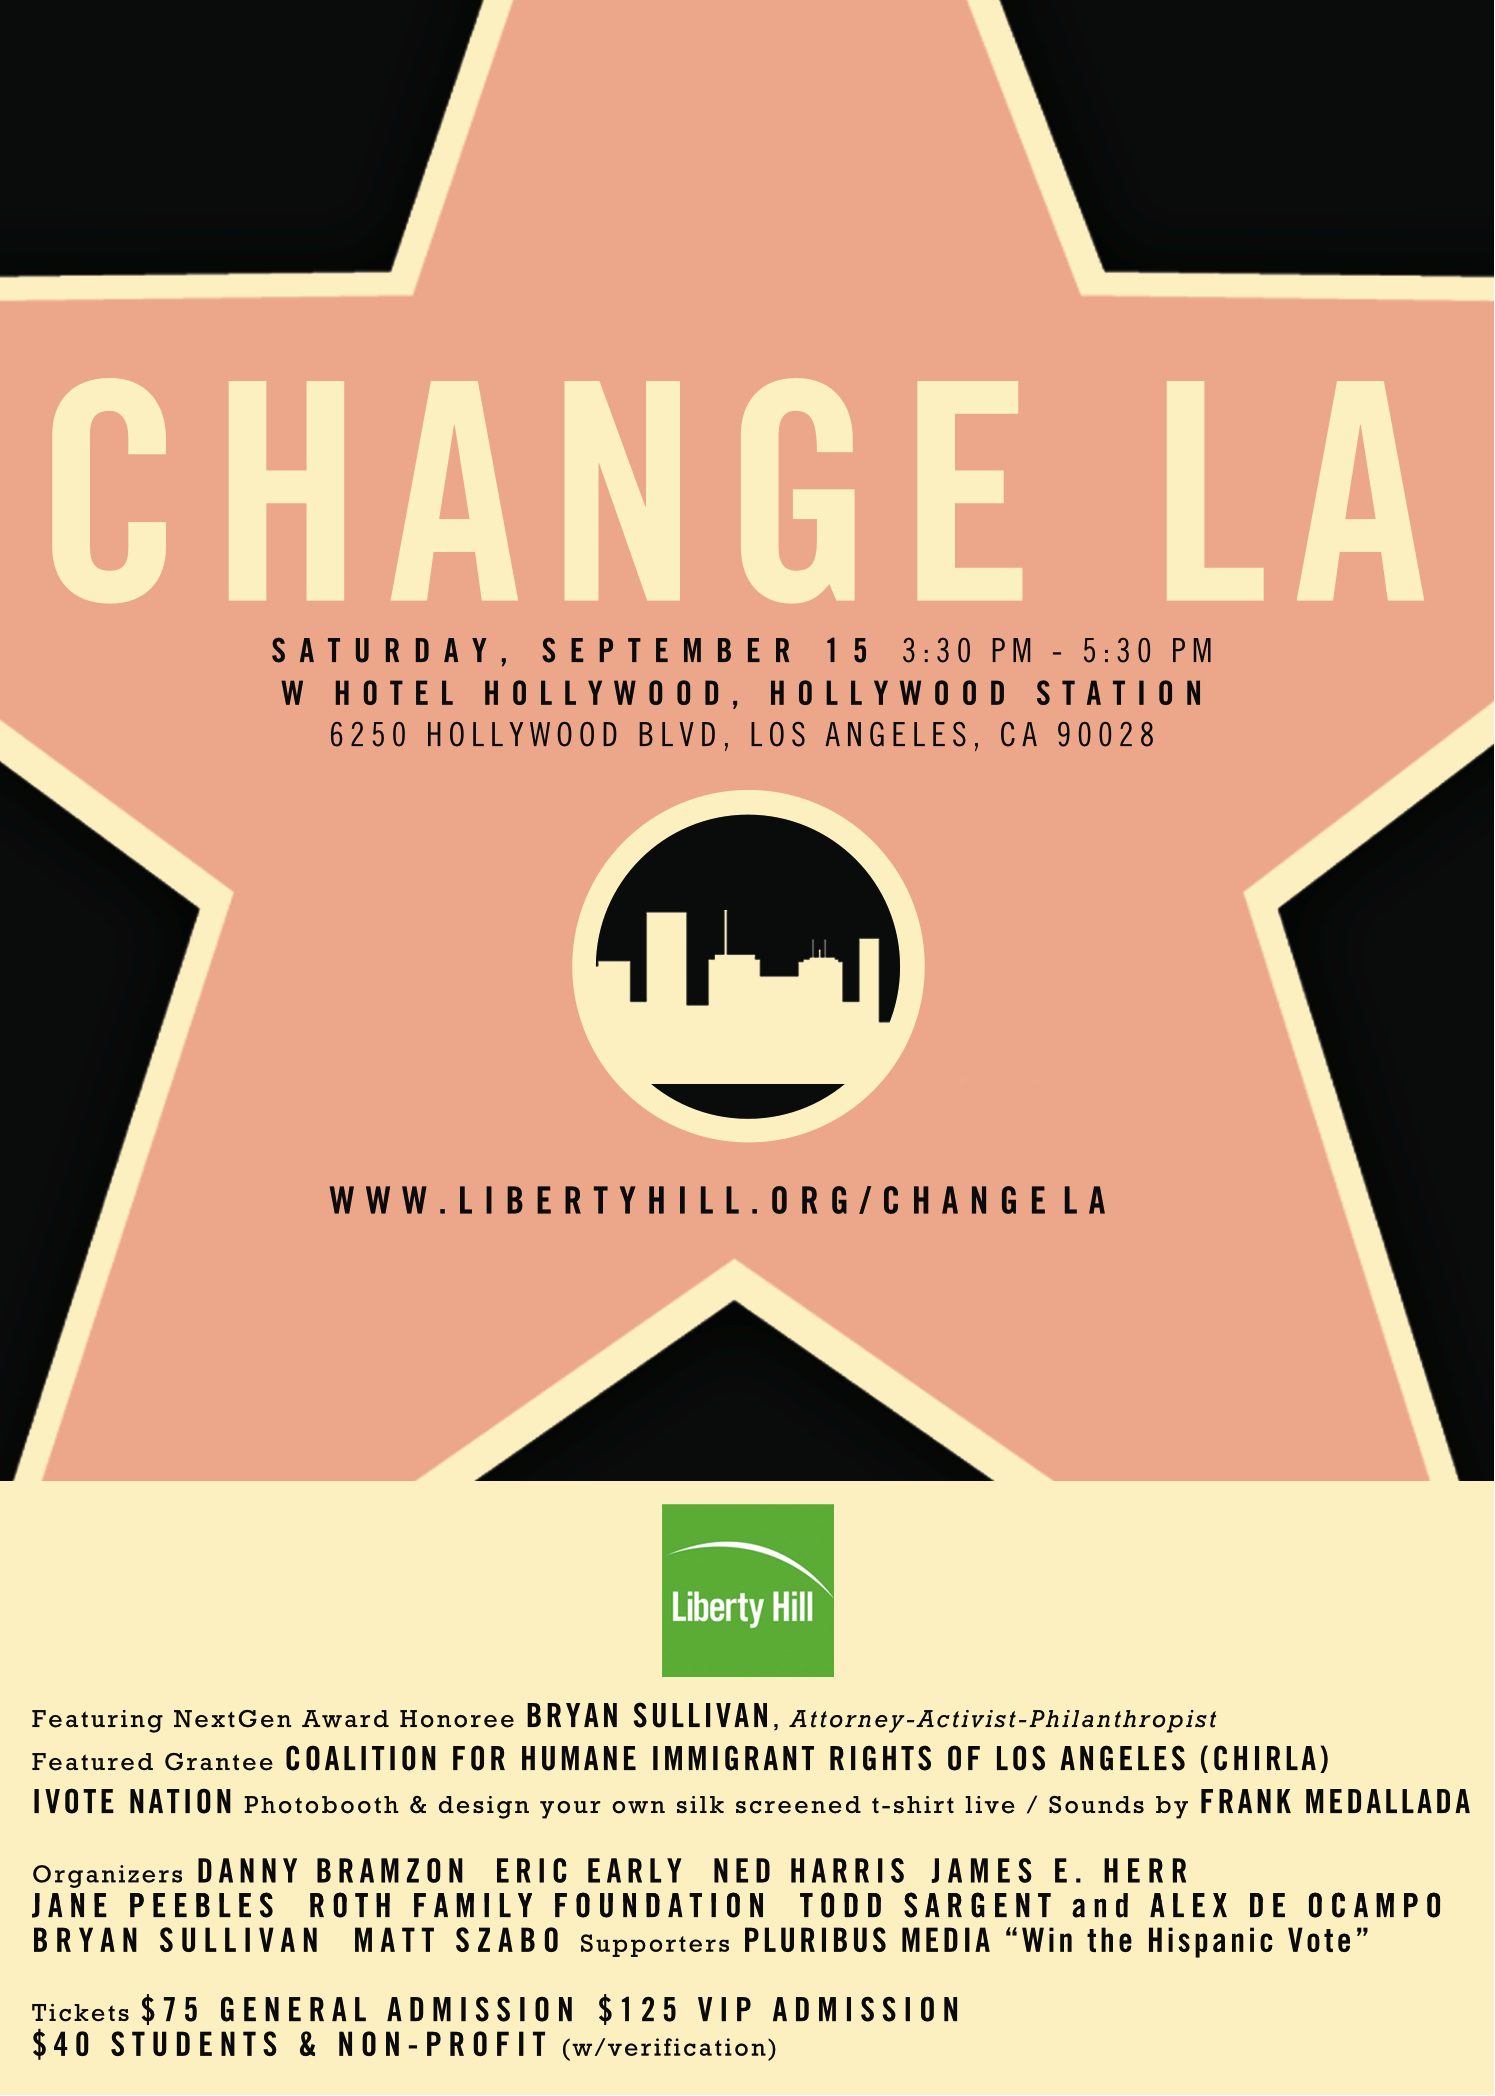 Change_LA_Invitation_FRONT_FINAL.jpg